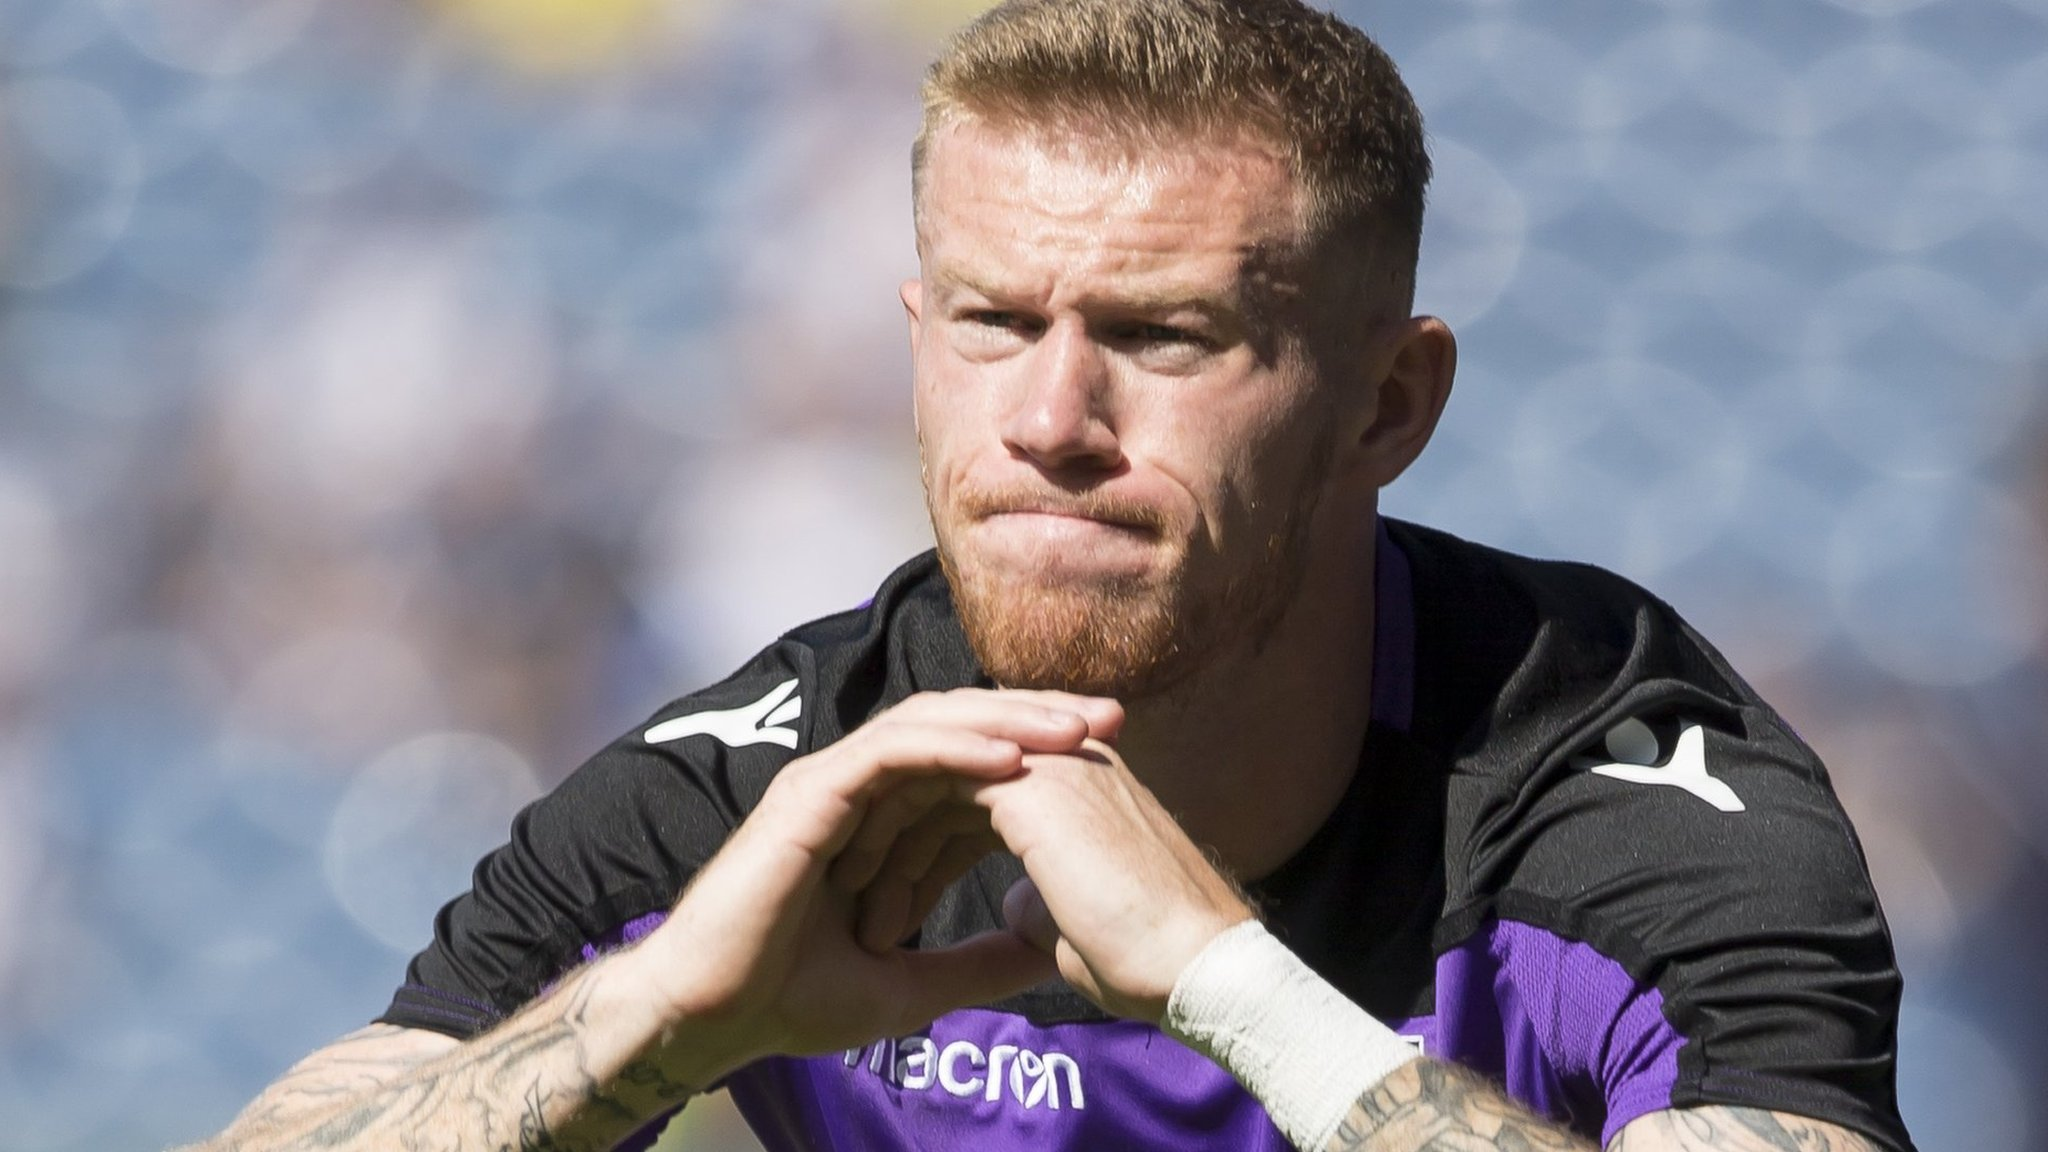 James McClean: Stoke City winger apologises to 'vast majority' of fans